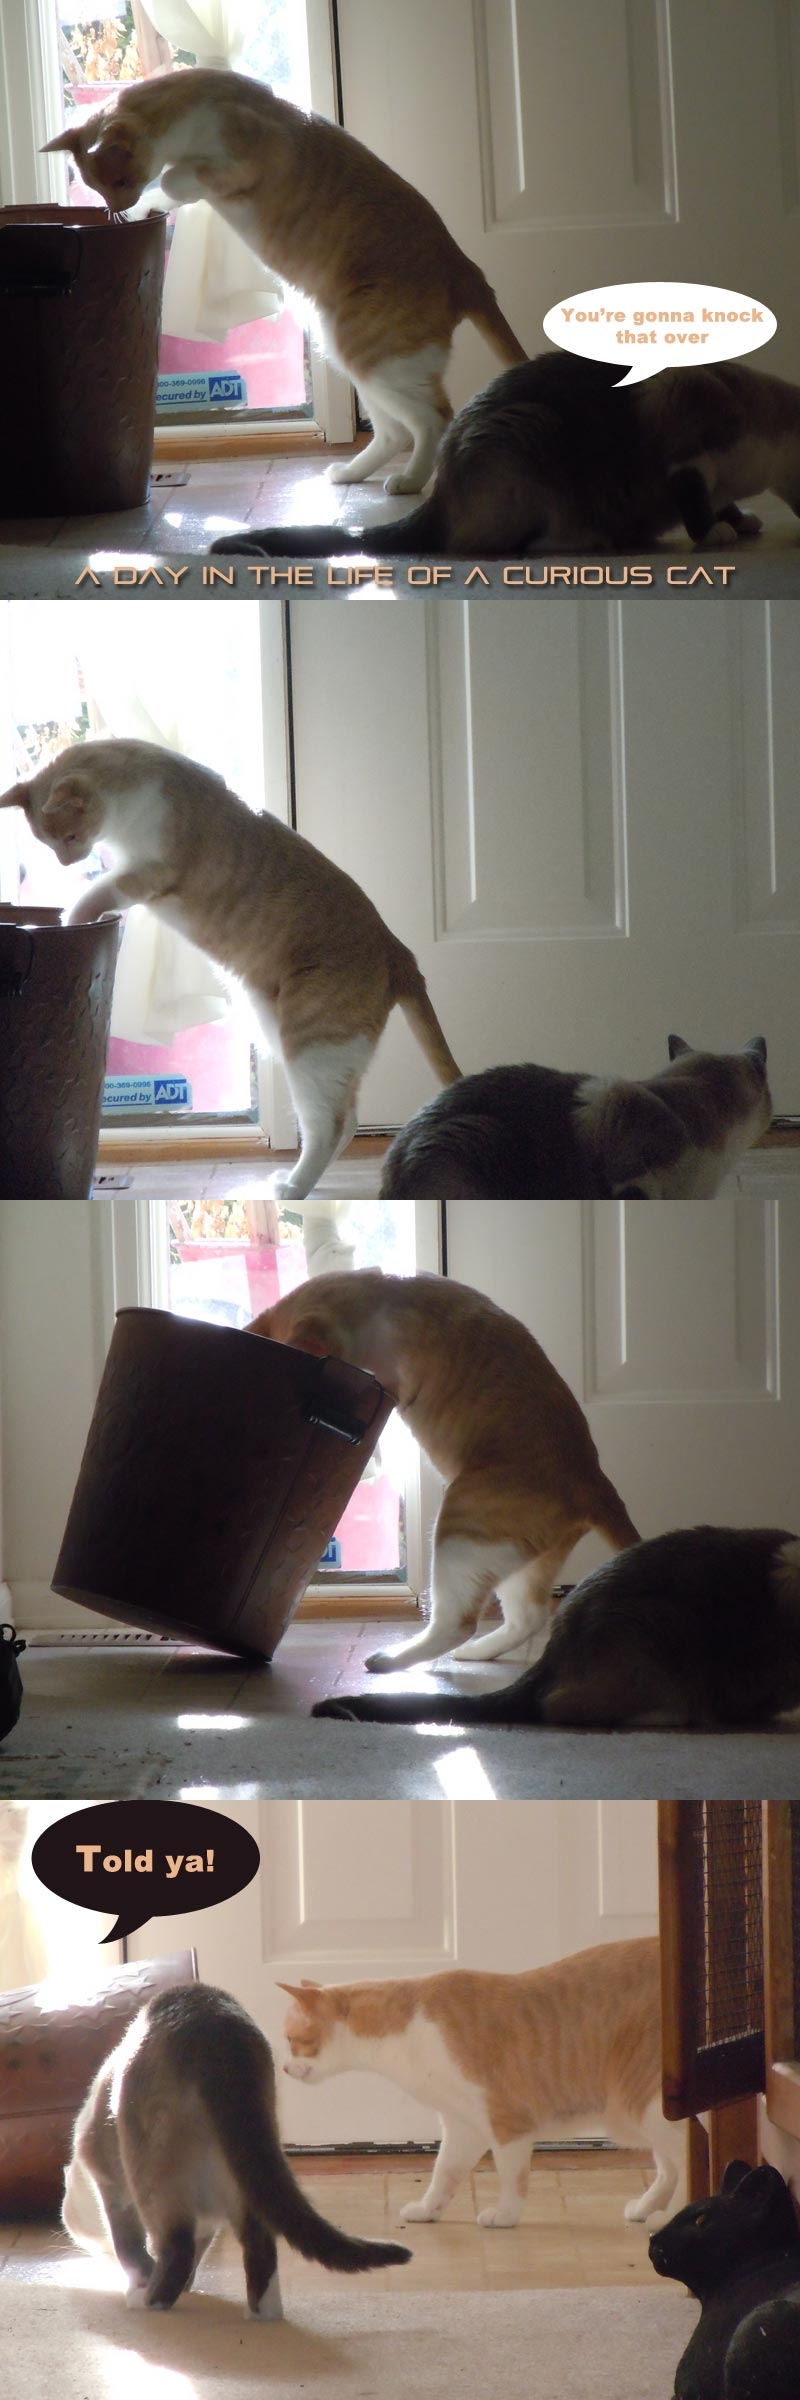 A day in the life of two clumsy curious cats caper